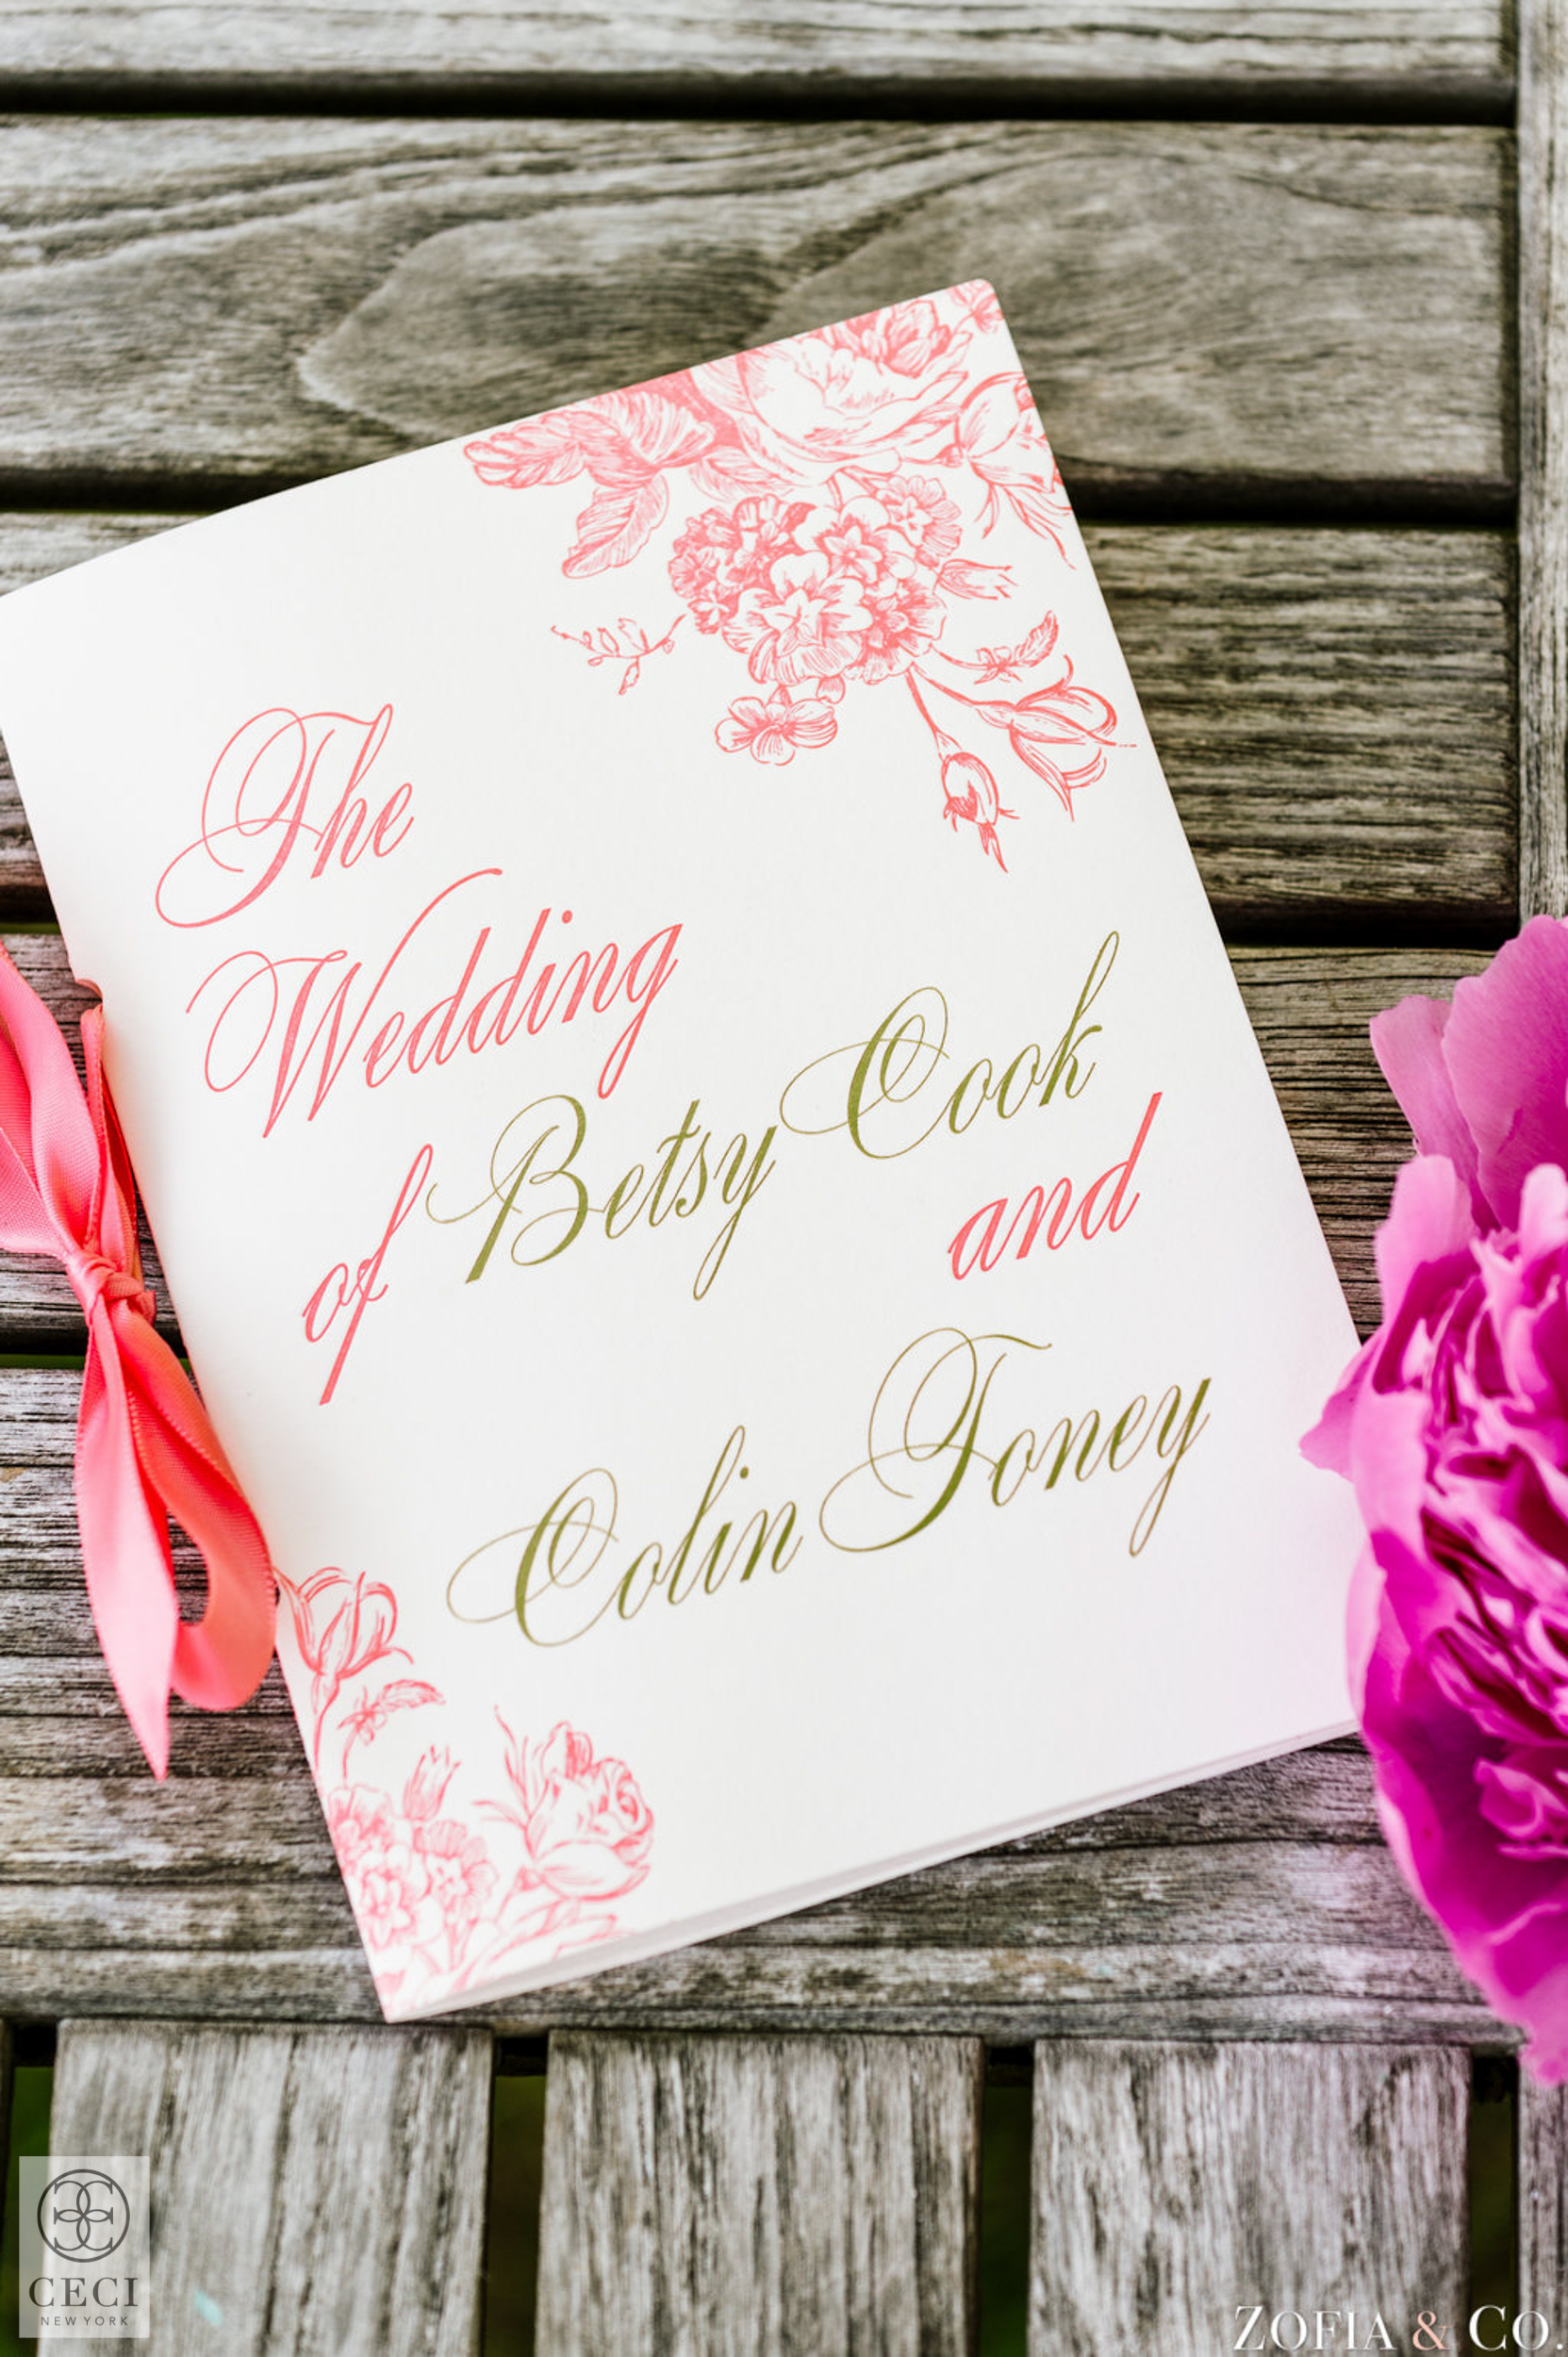 Ceci_New_York_Custom_Luxury_Wedding_LaserCut_Stationery_Personalized_Couture_Foil_Stamping_Black_Chic_-13 copy.jpg